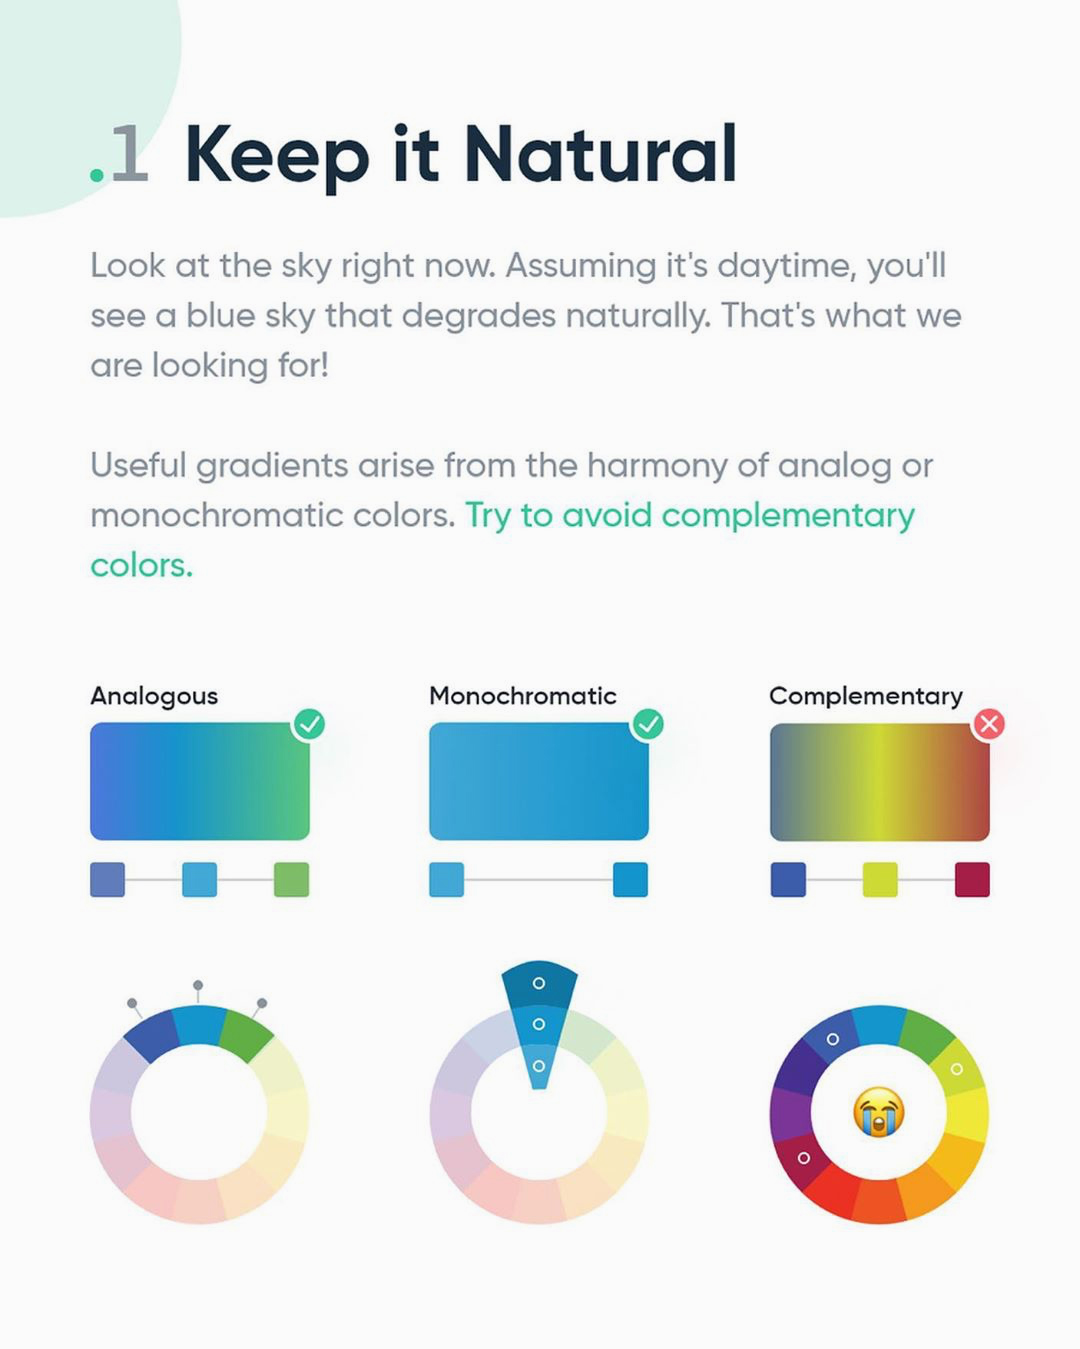 How to create better gradients - Keep it natural